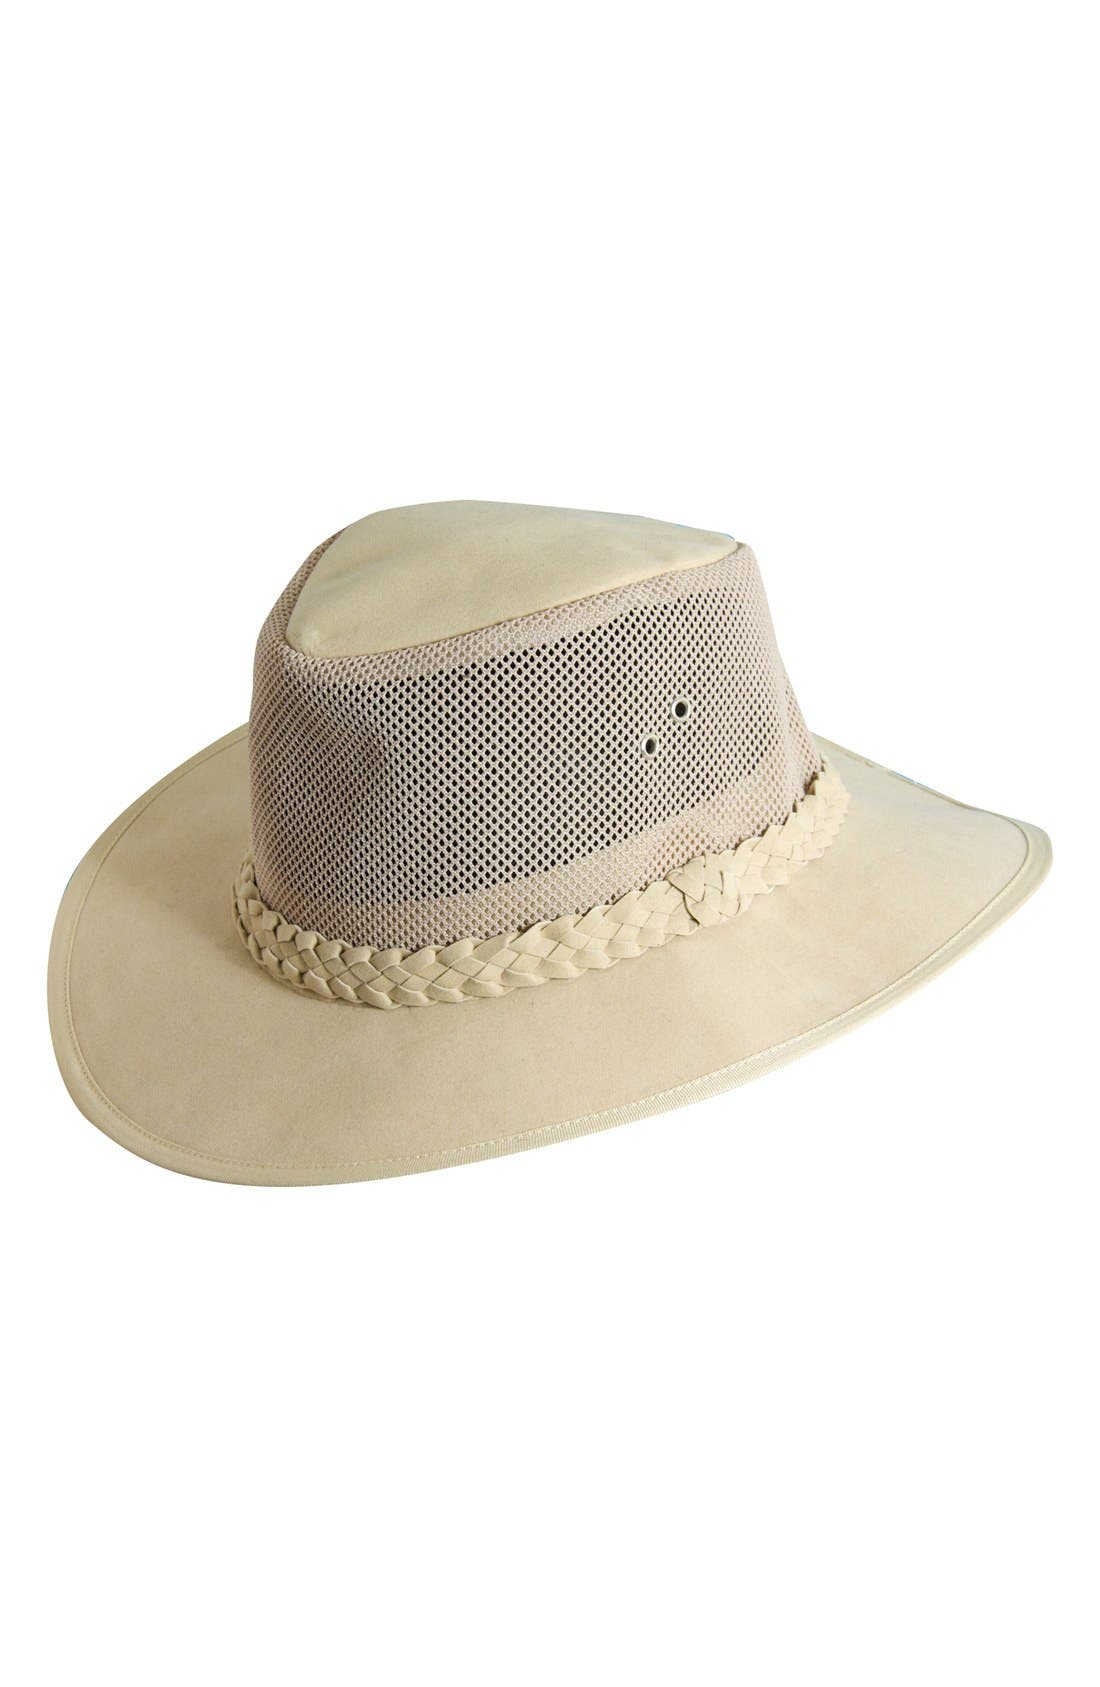 Main Image - Dorfman Pacific Soaker Hat